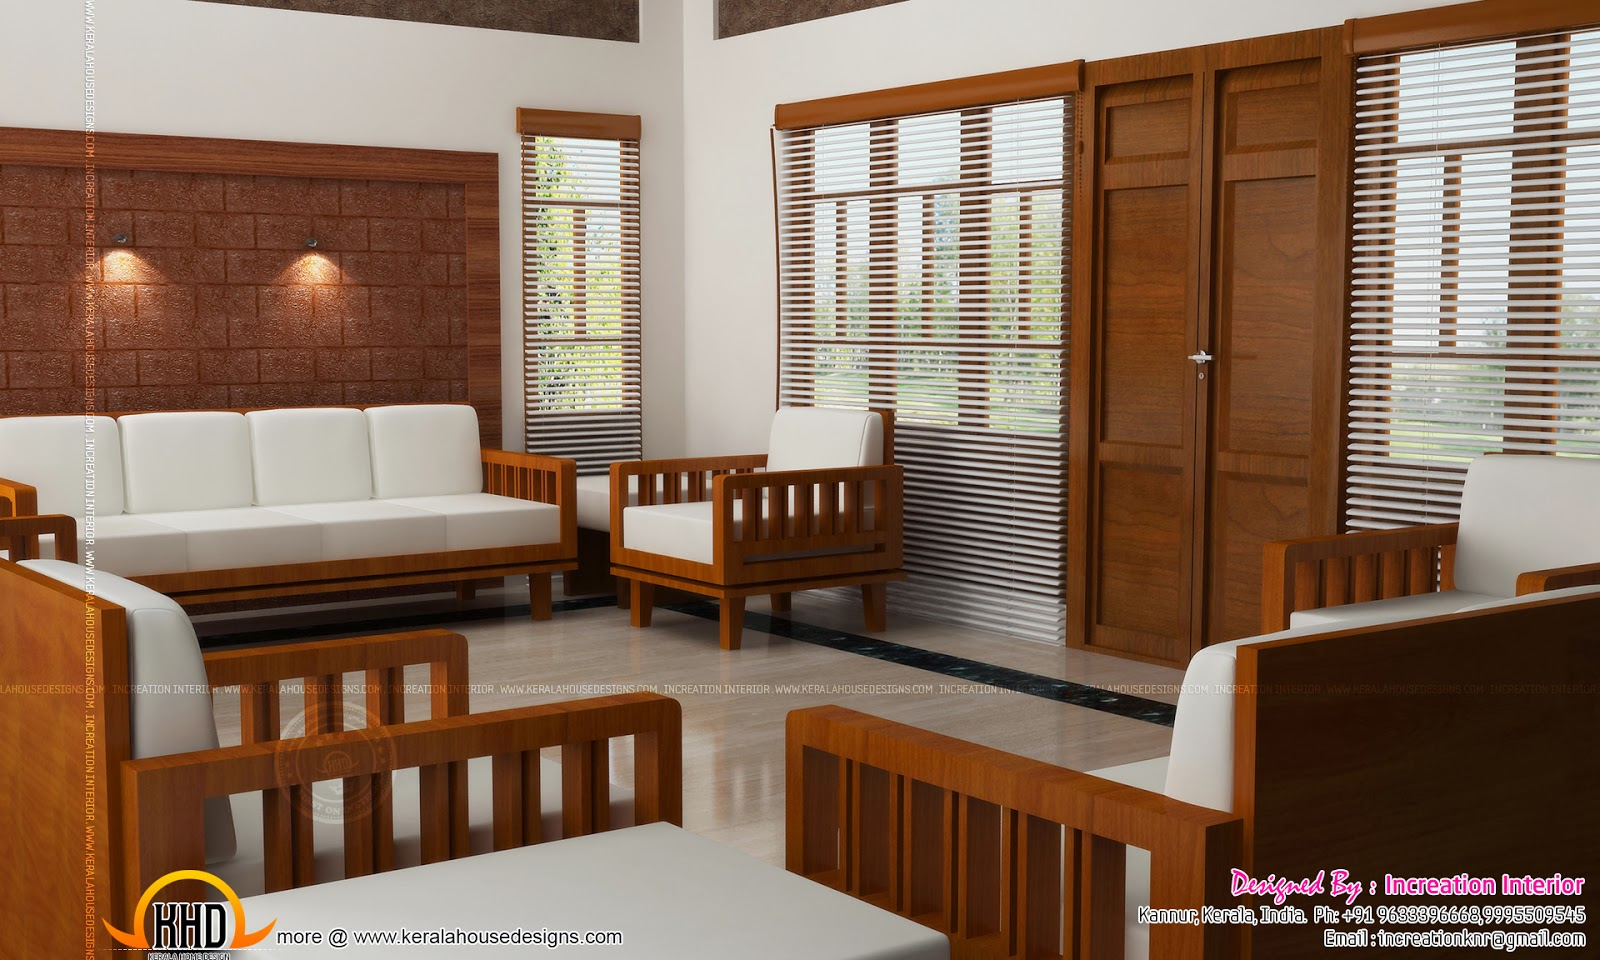 Beautiful home interiors kerala home design and floor plans for Kerala home interior